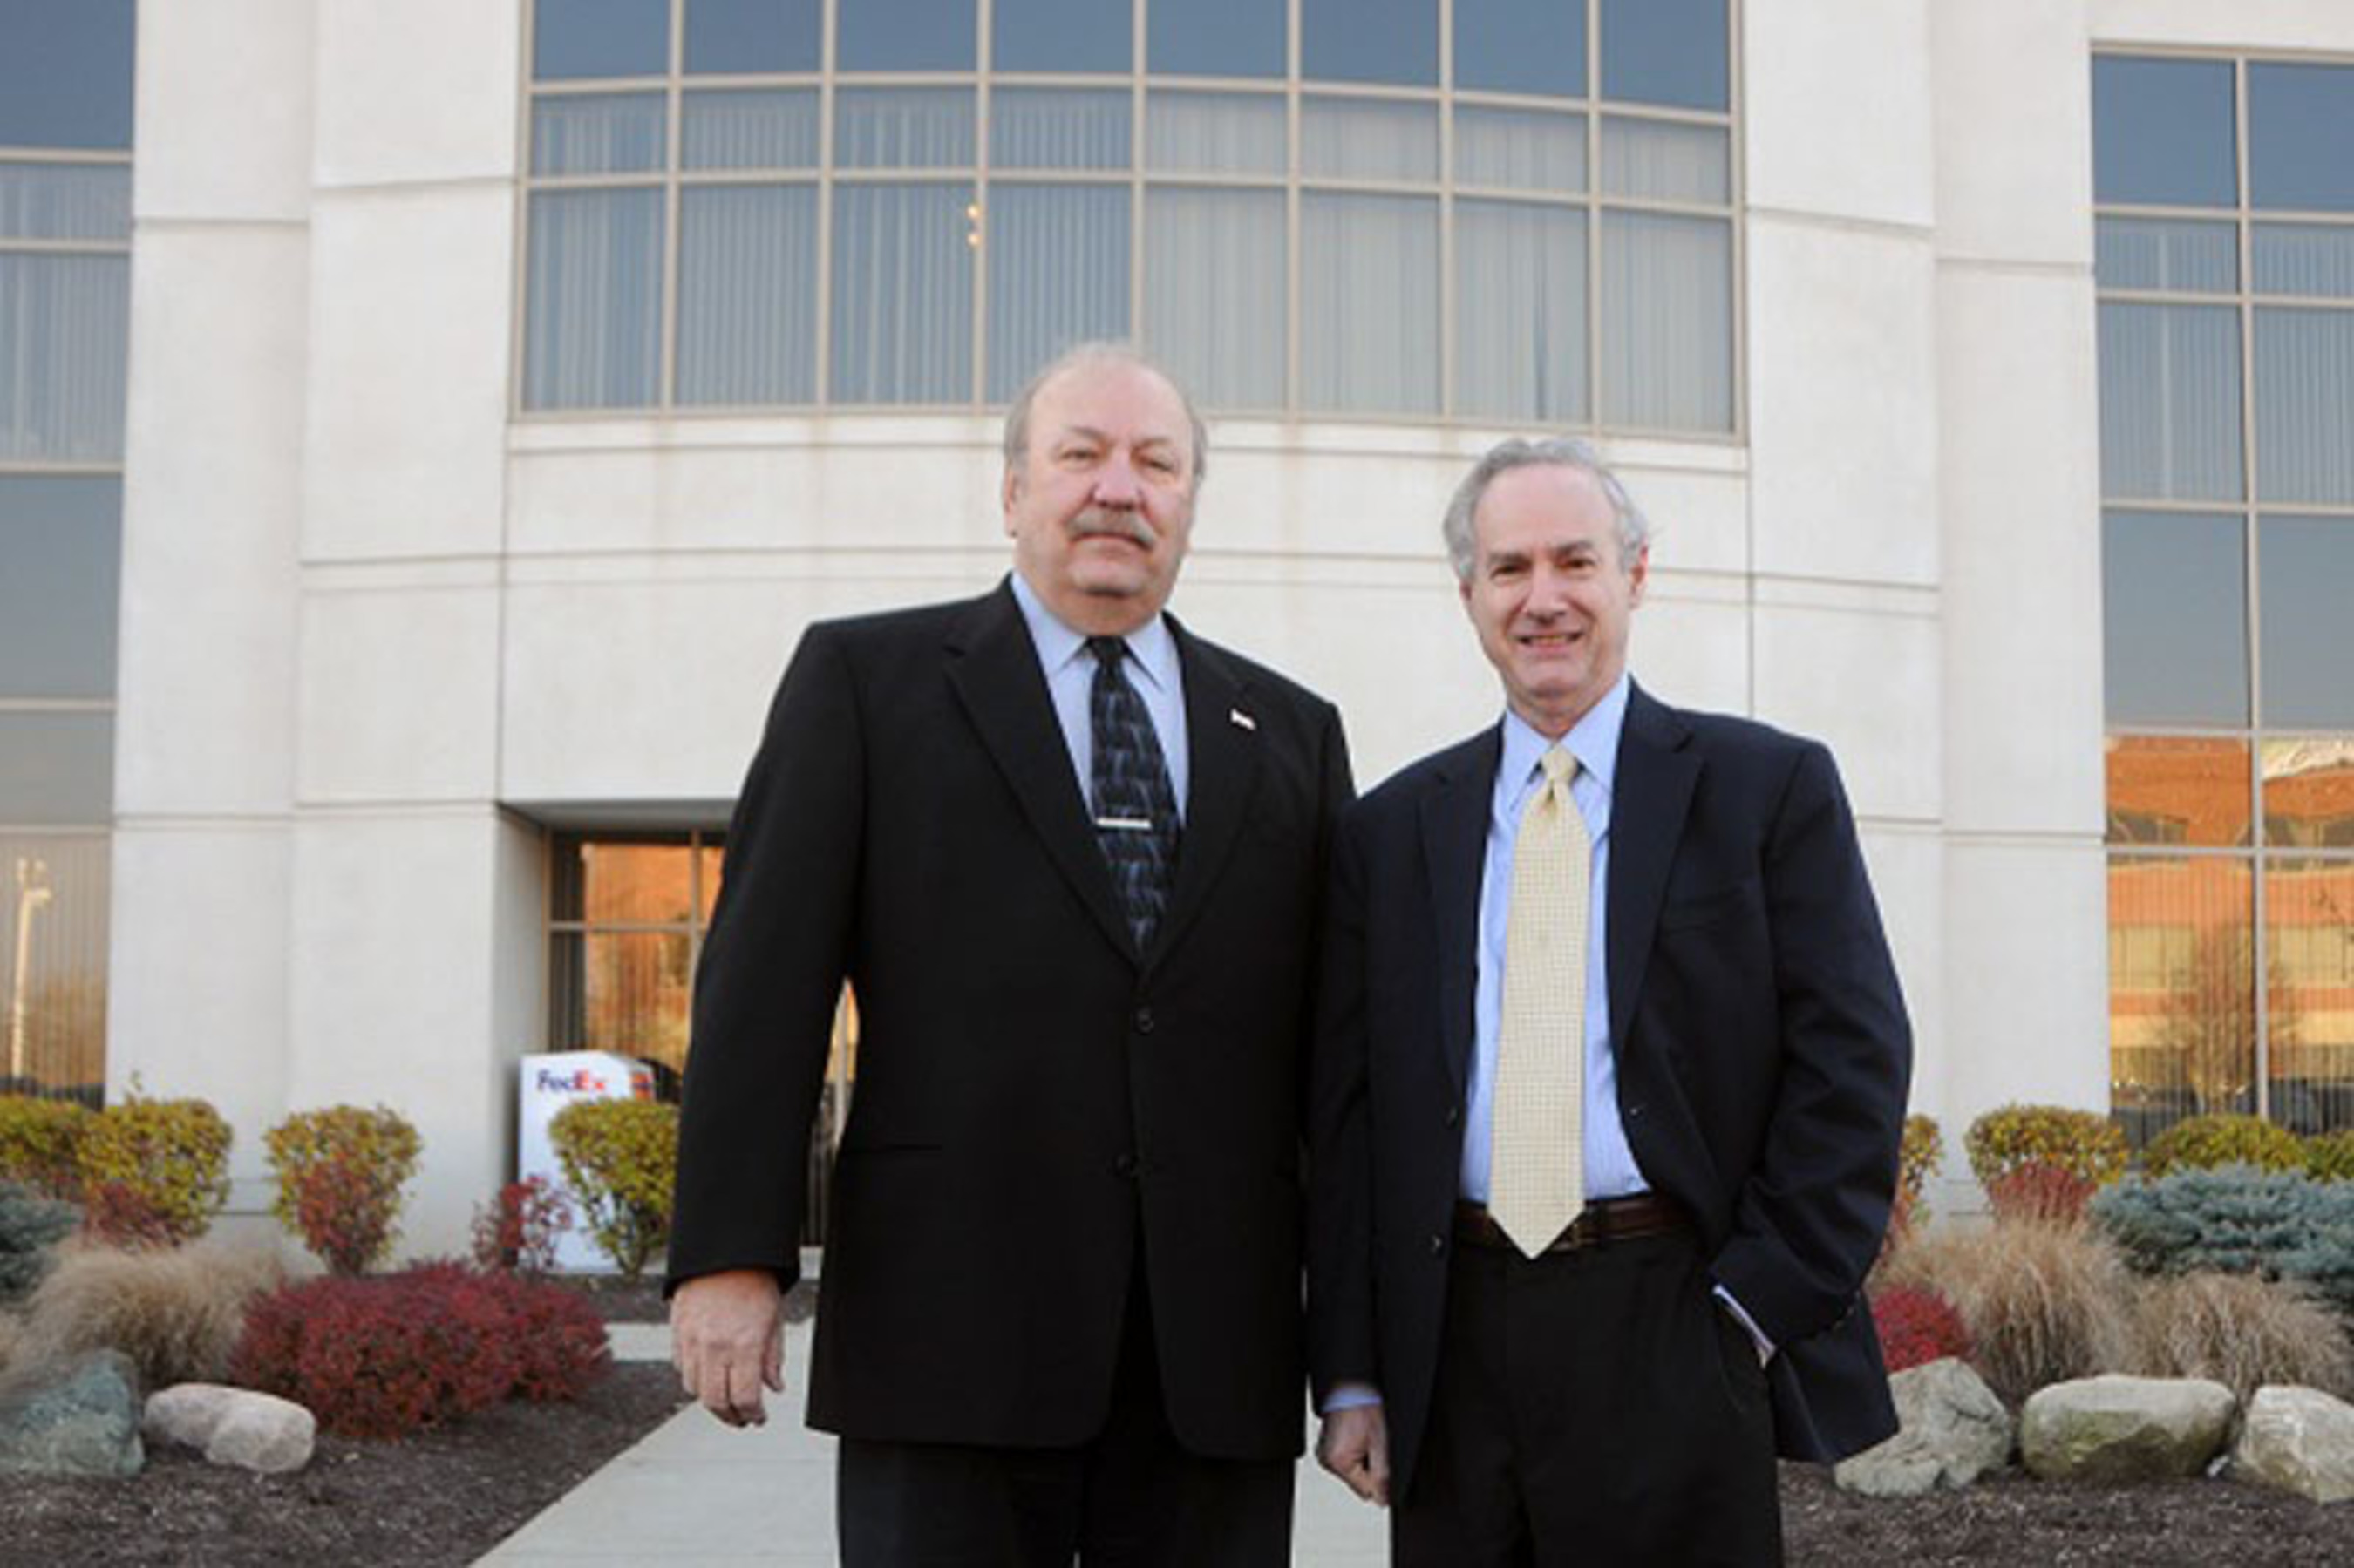 From left: Jim Blair and Marc Kiner of Premier Social Security Consulting (Paul Norton Photo).  (PRNewsFoto/National Social Security Advisors, Paul Norton Photo)